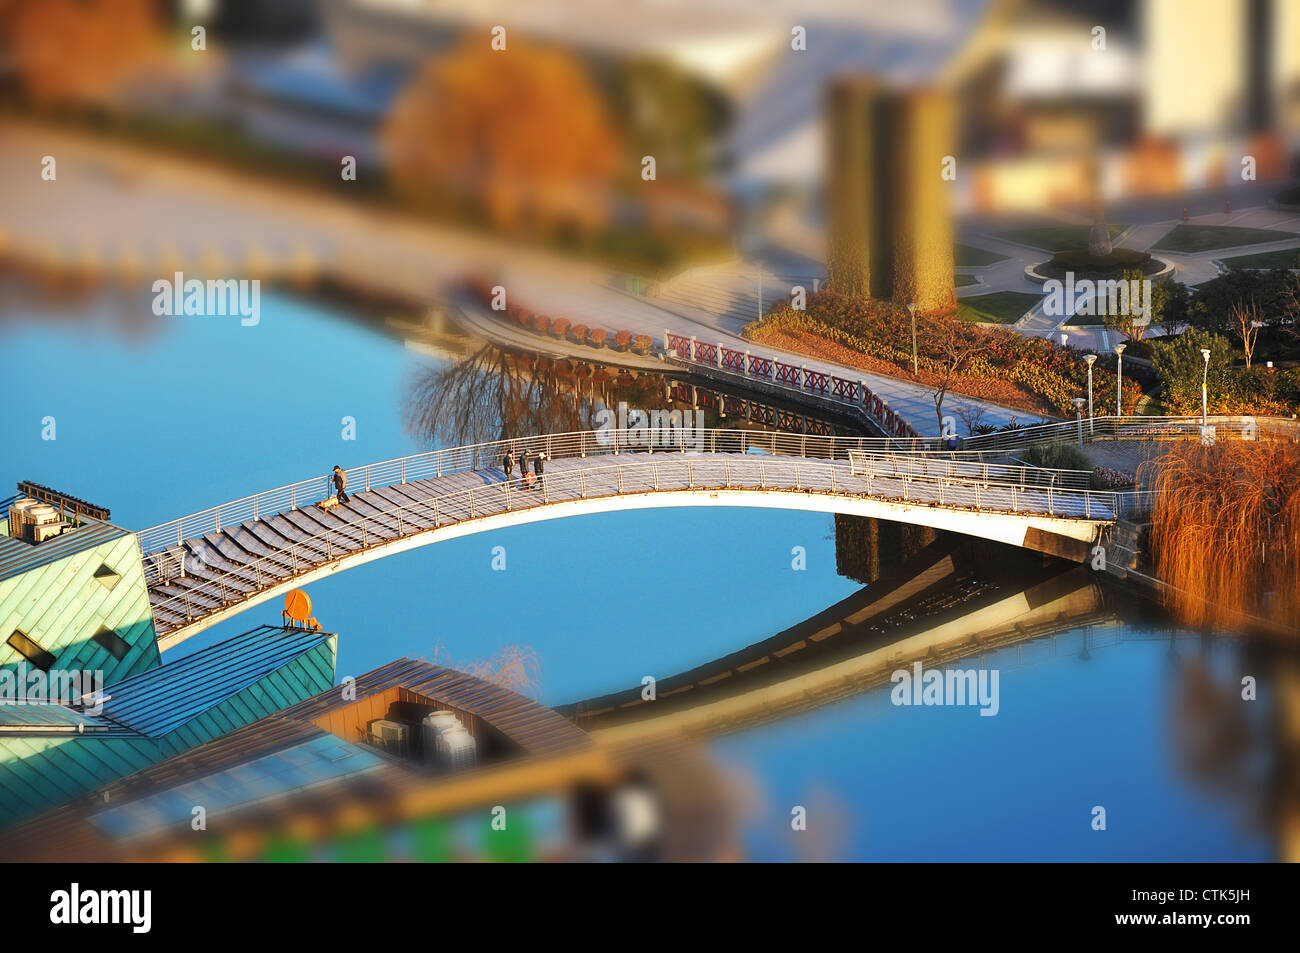 Tilt-shift photography of the bridge between Yifei Originality street and the Sciences and Technology museum, Shanghai - Stock Image